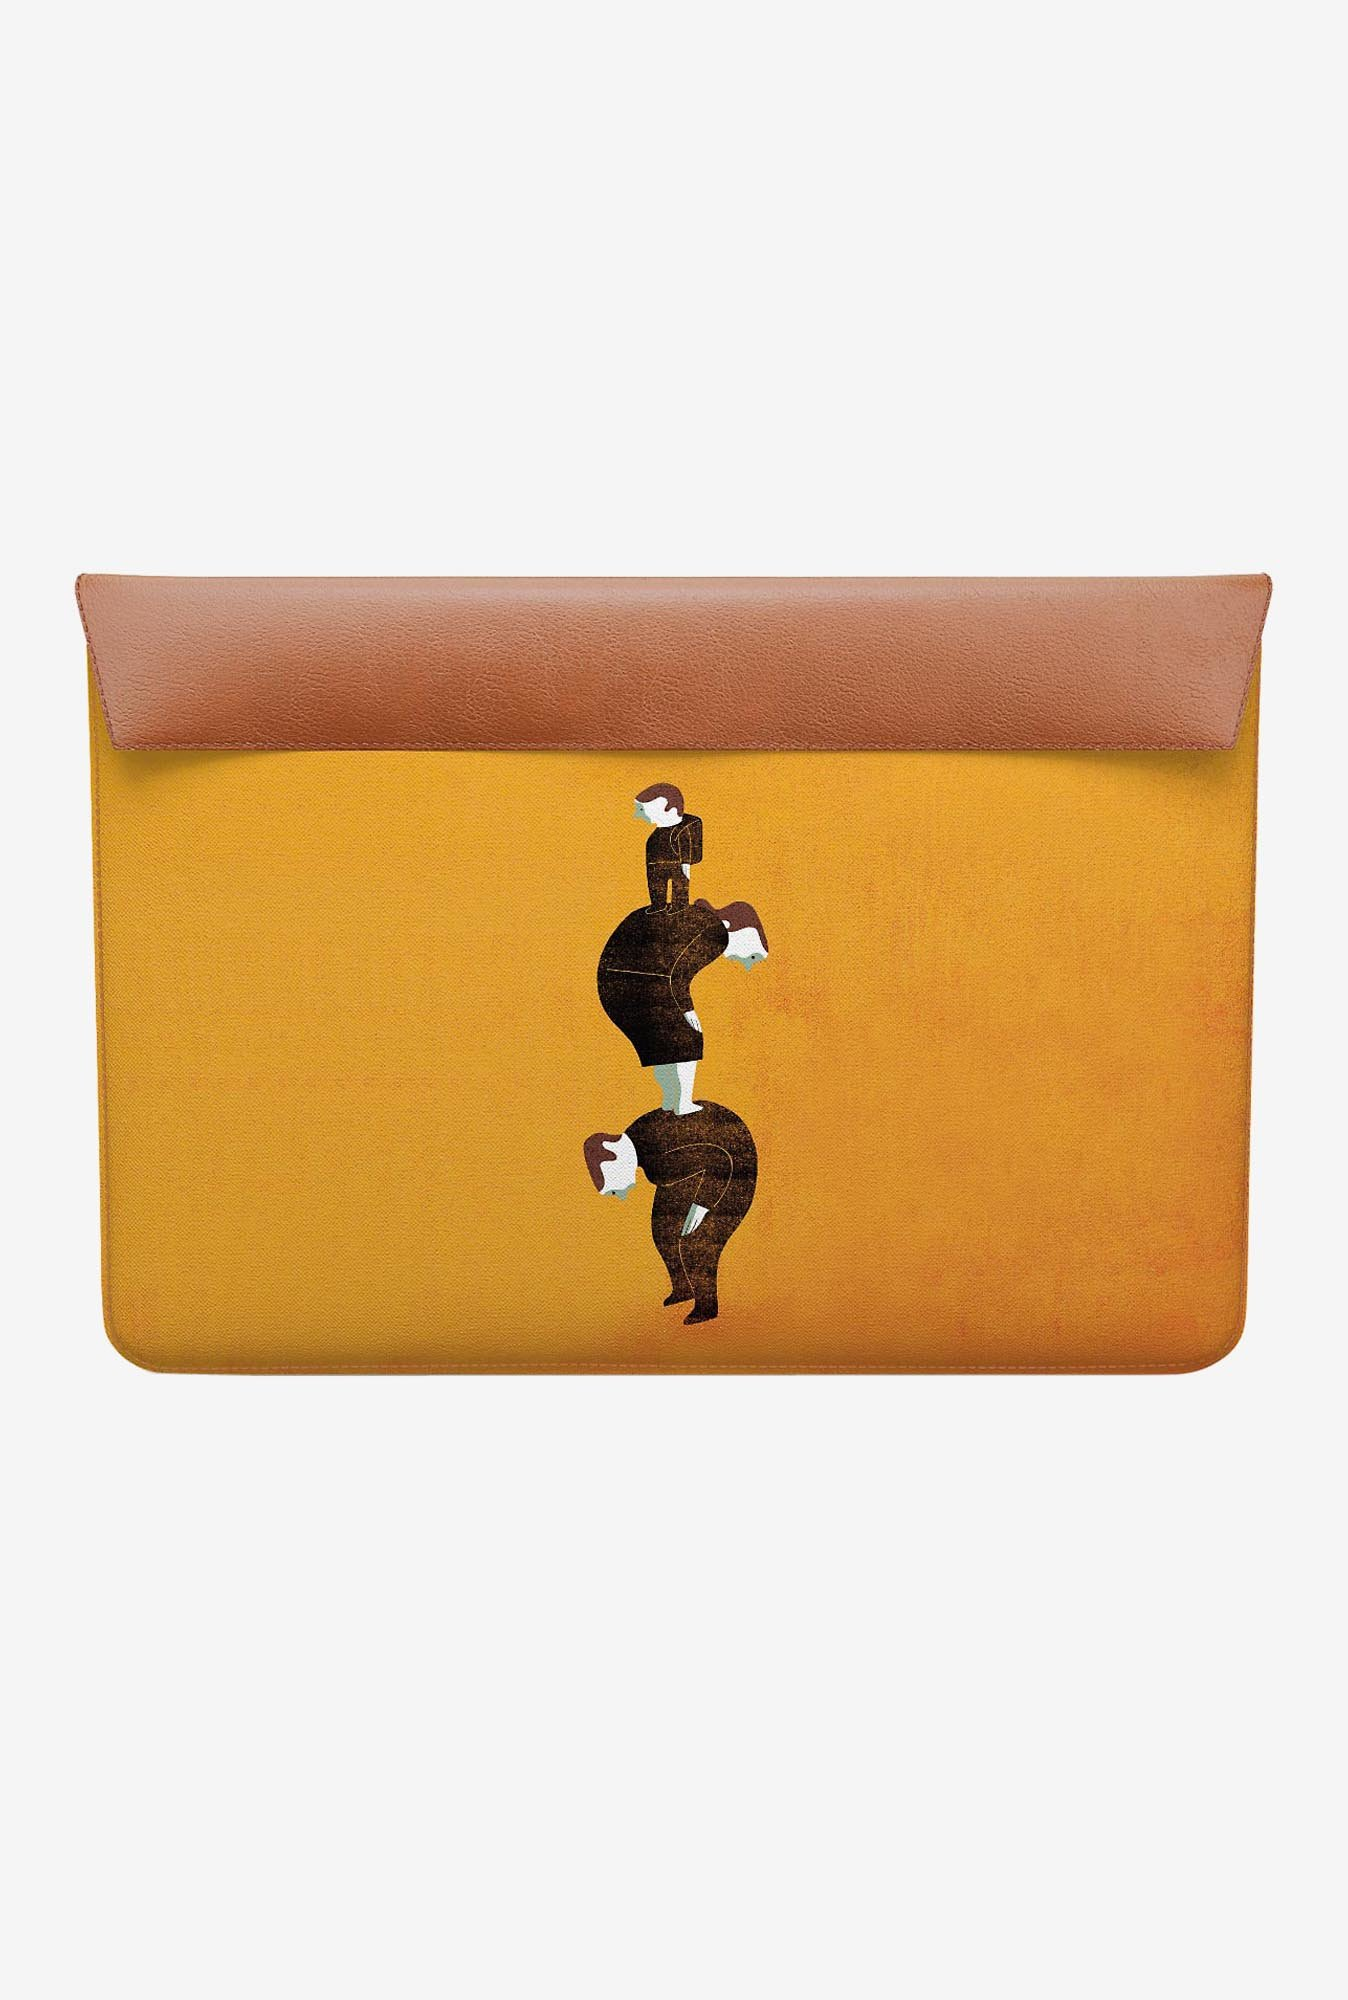 DailyObjects Top Management MacBook 12 Envelope Sleeve